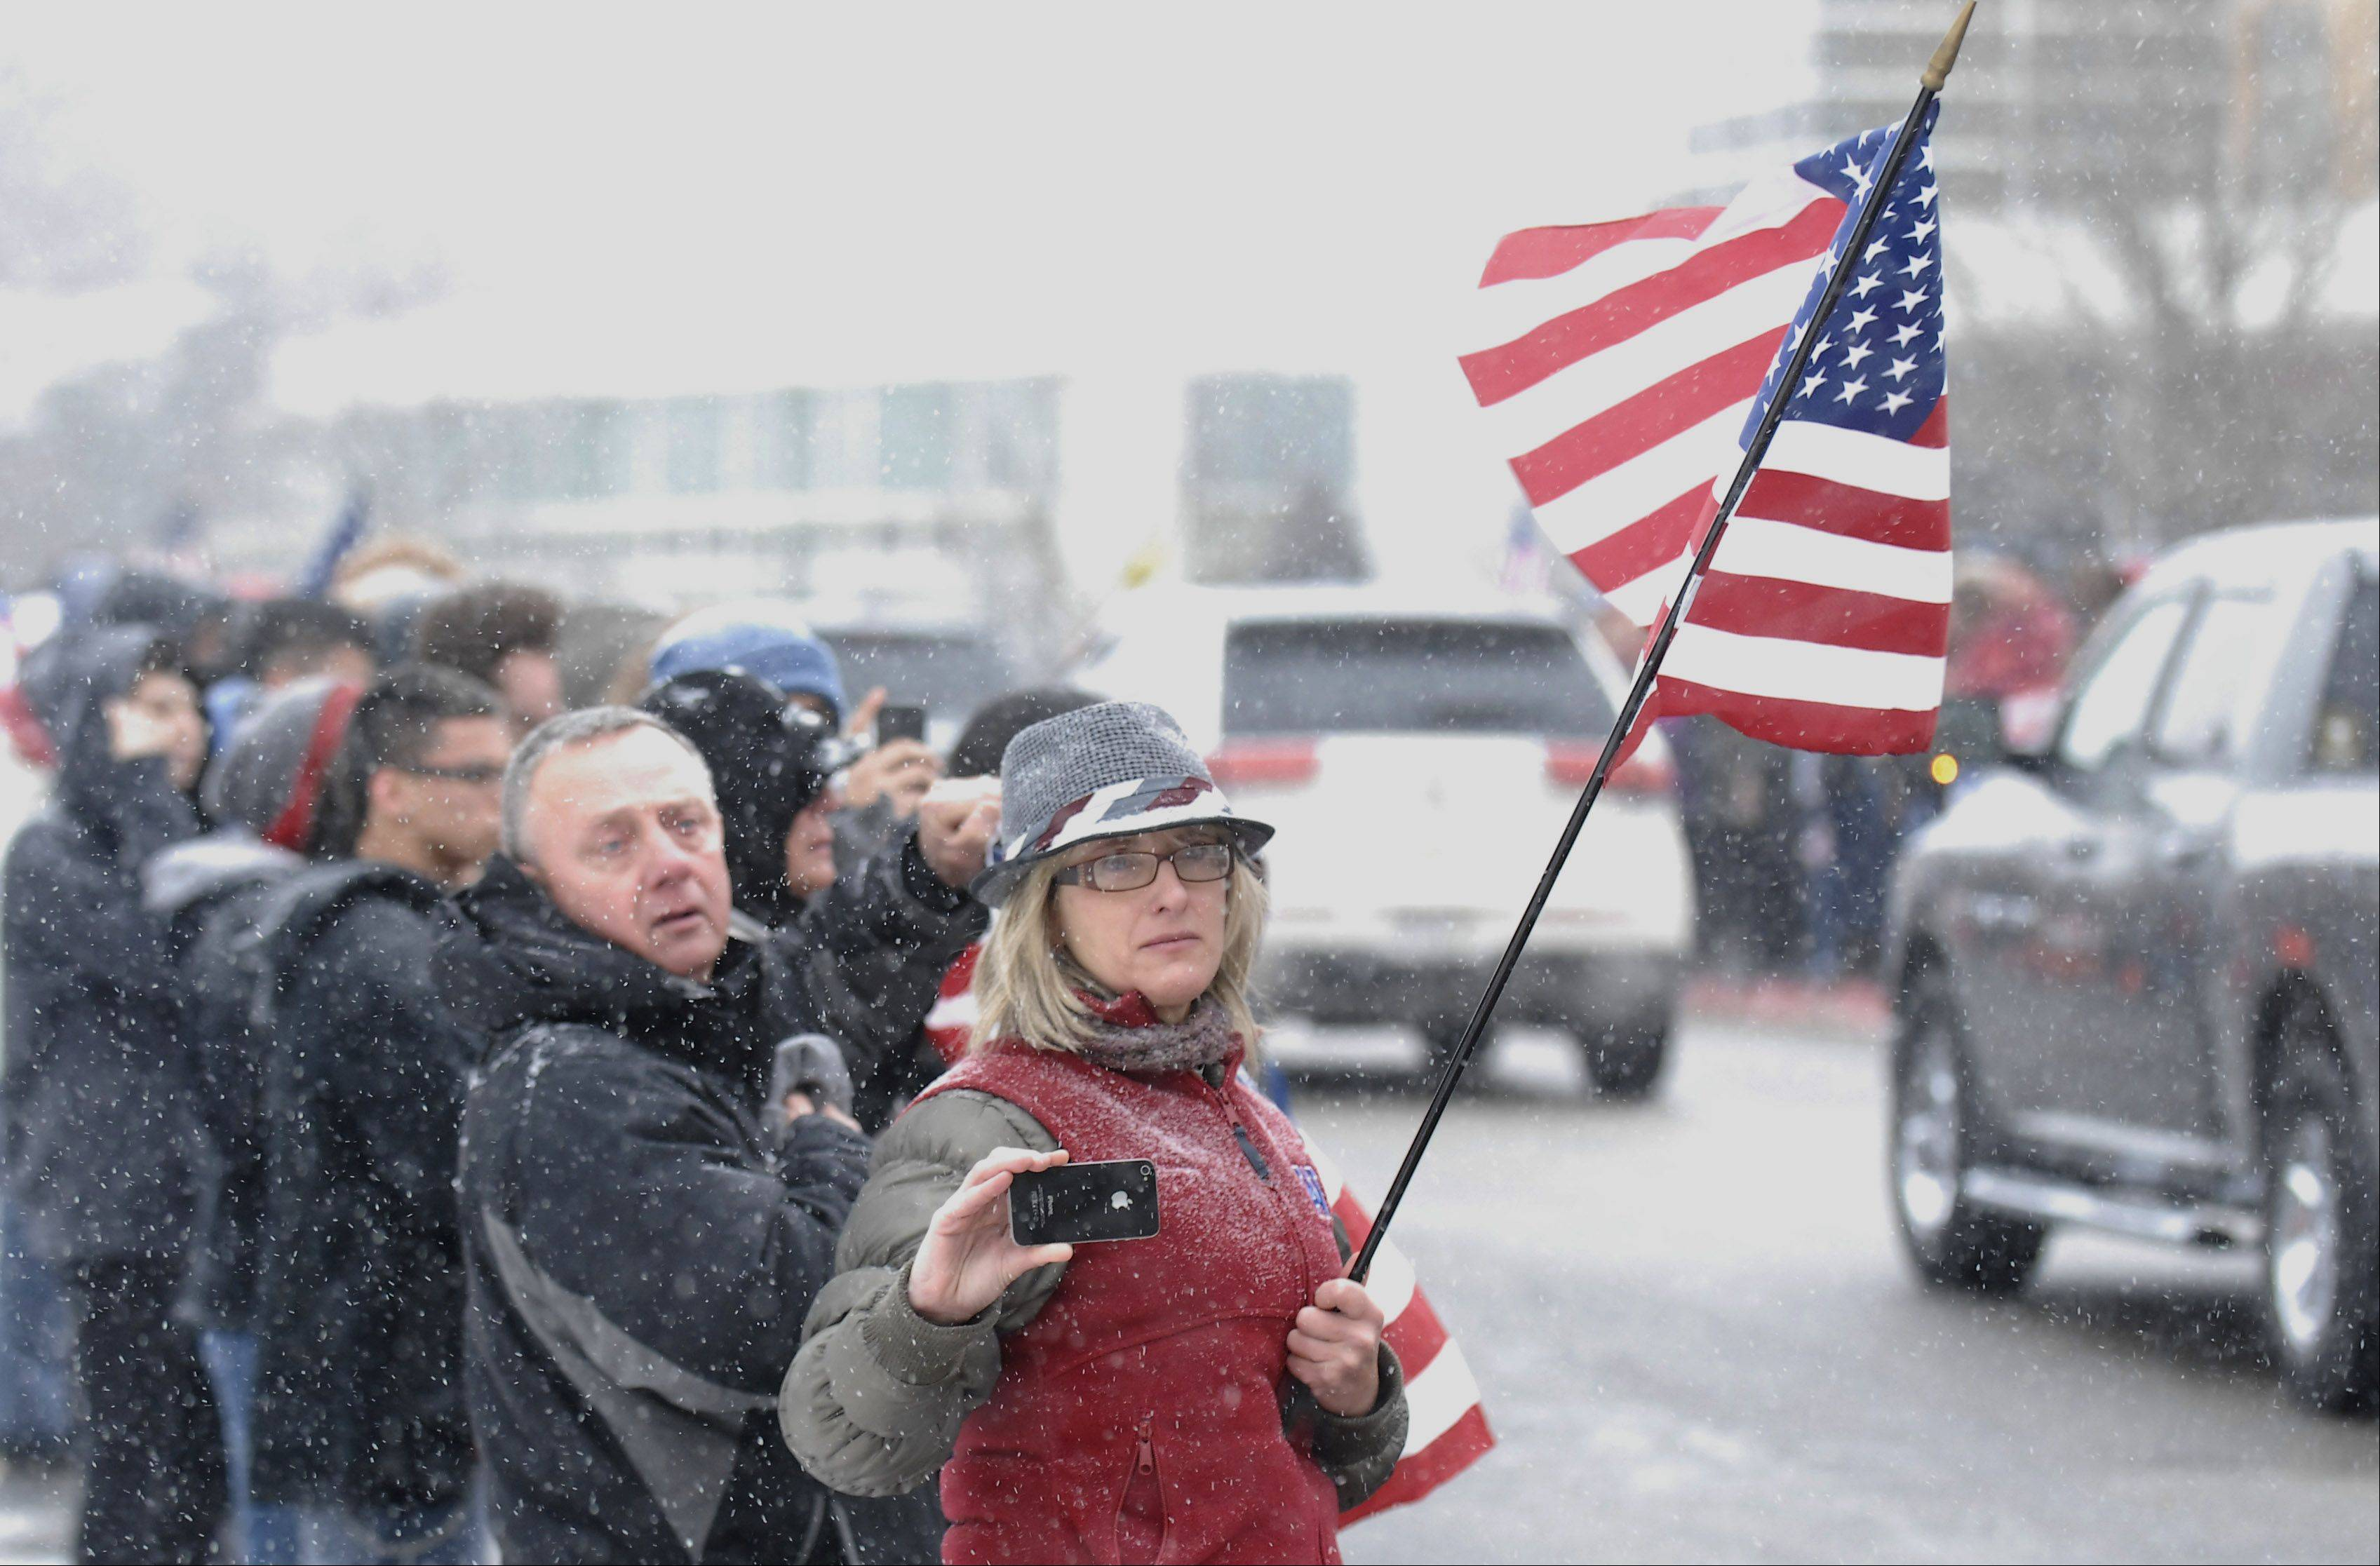 West Aurora teacher Brandi Martin videos the funeral procession of Spc. Christopher A. Patterson as his funeral procession passes his former school on Friday, January 20. Patterson, a 2009 graduate, was killed on January 6.